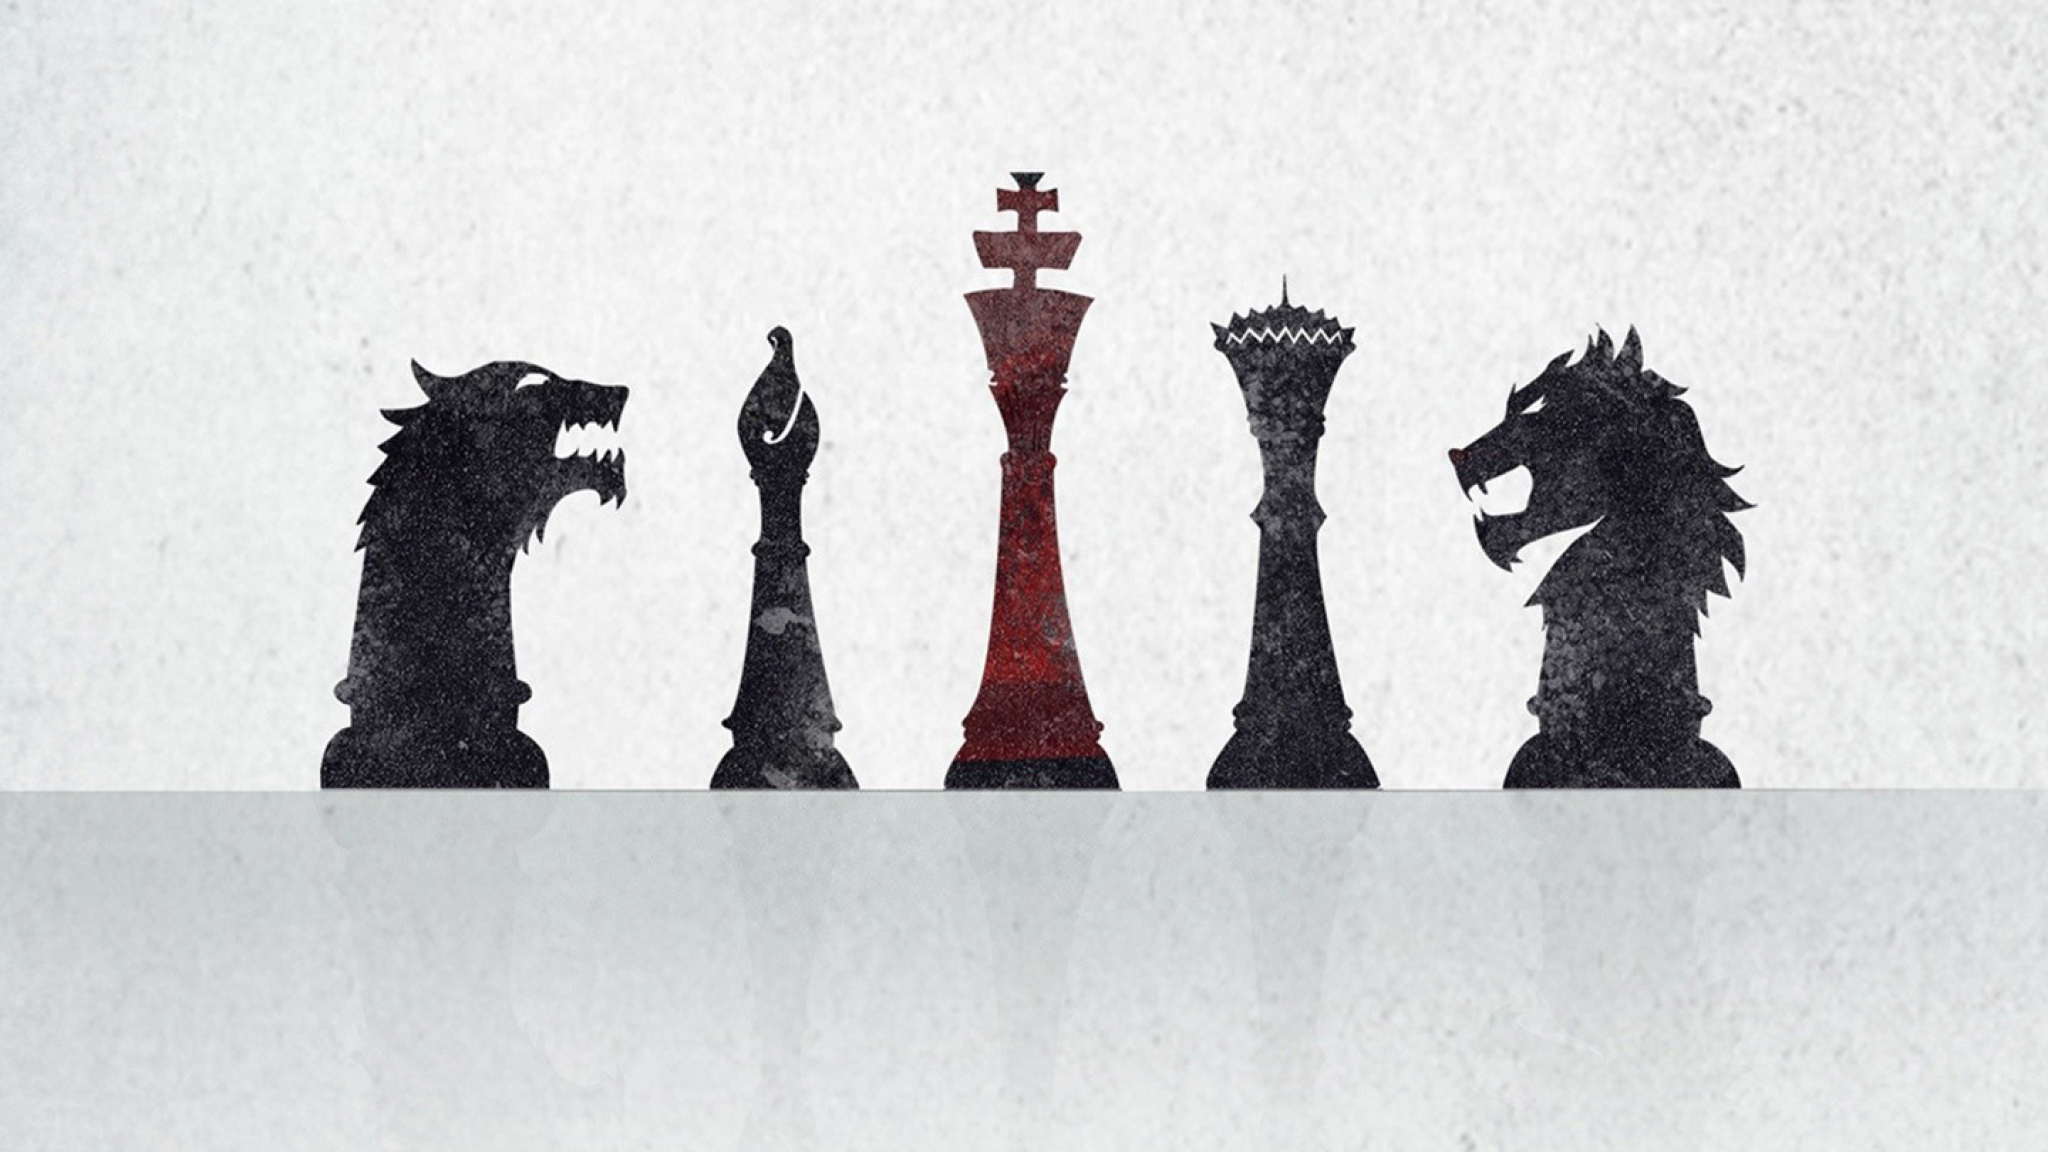 Game Of Thrones Chess Pawn Banner, HD Wallpaper